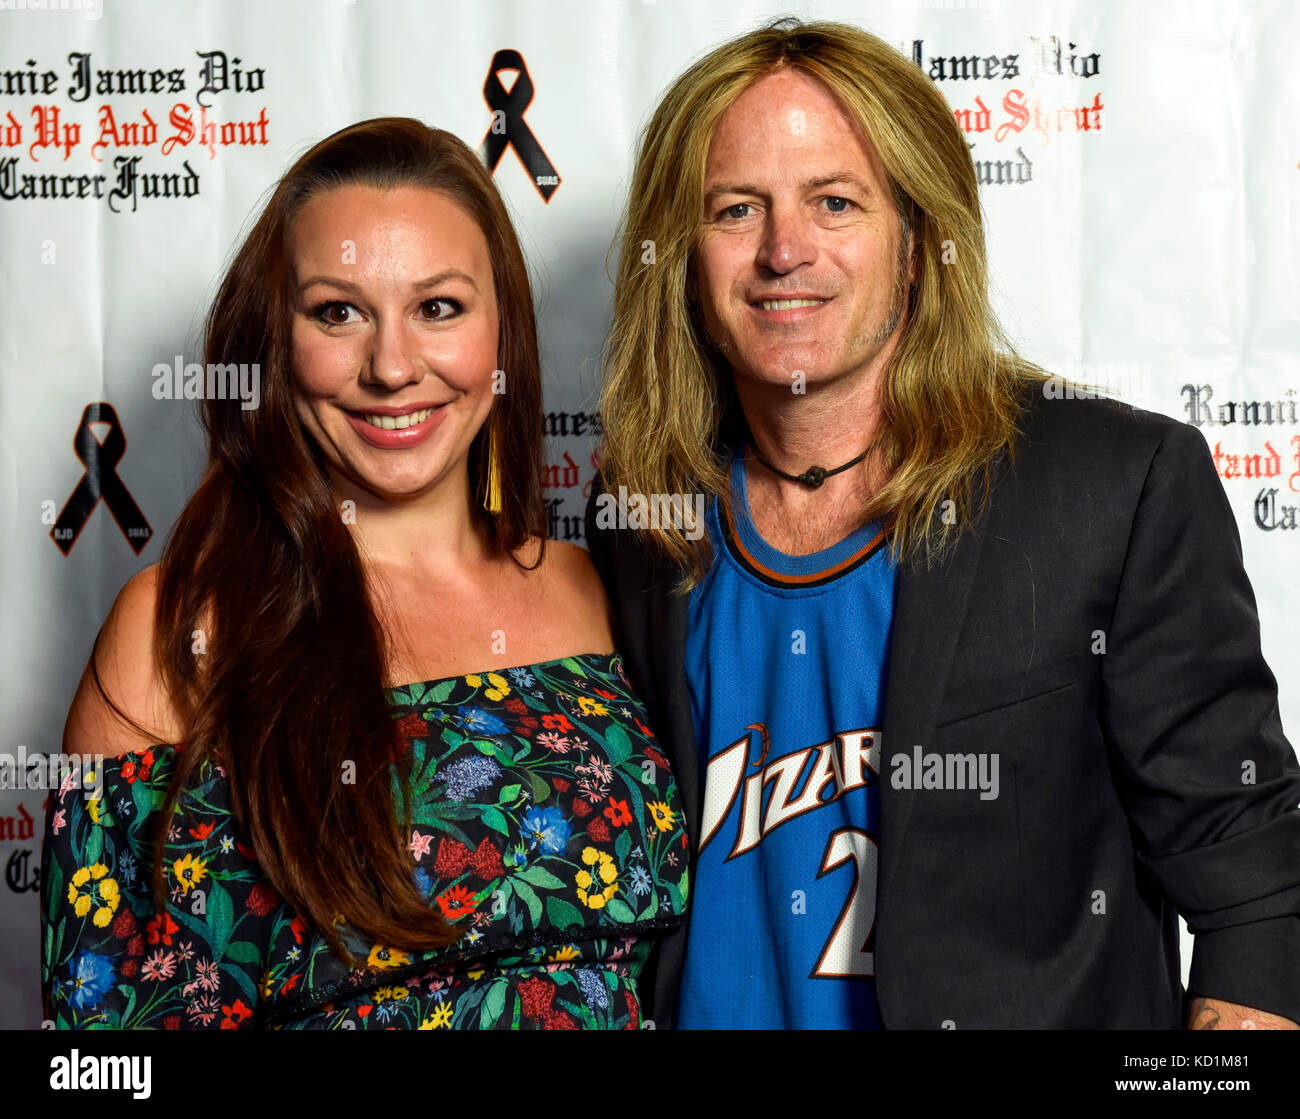 Studio City, CA, October 6, 2017 - Doug & Daniela Aldrich at Bowl 4 Ronnie to bennefit the Ronnie James Dio - Stock Image